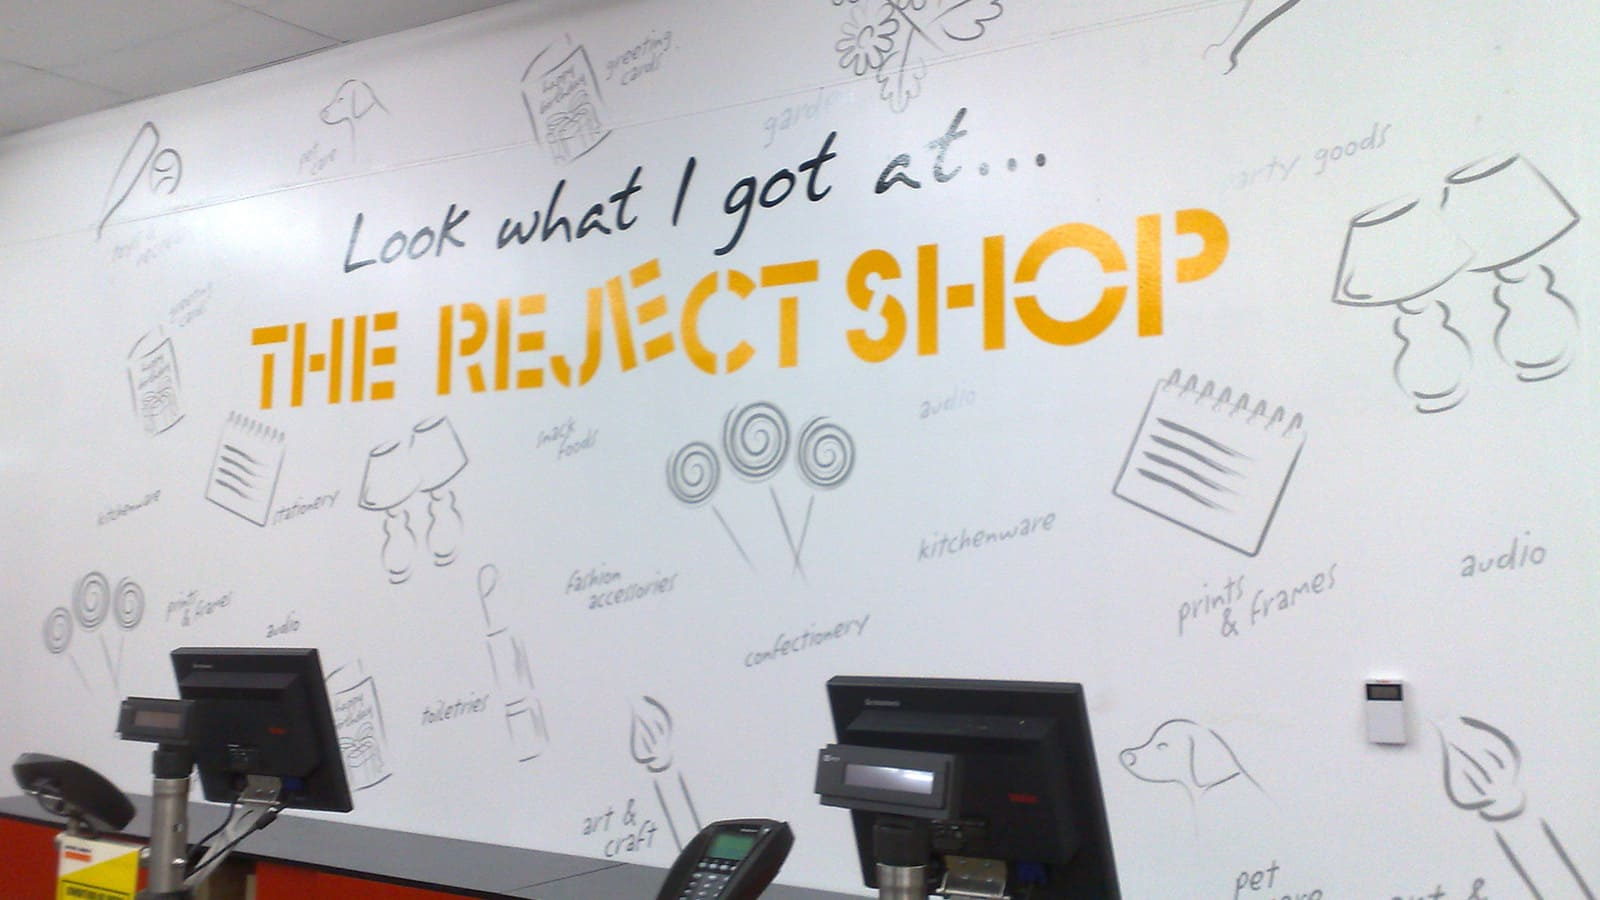 wall-graphics-reject-shop